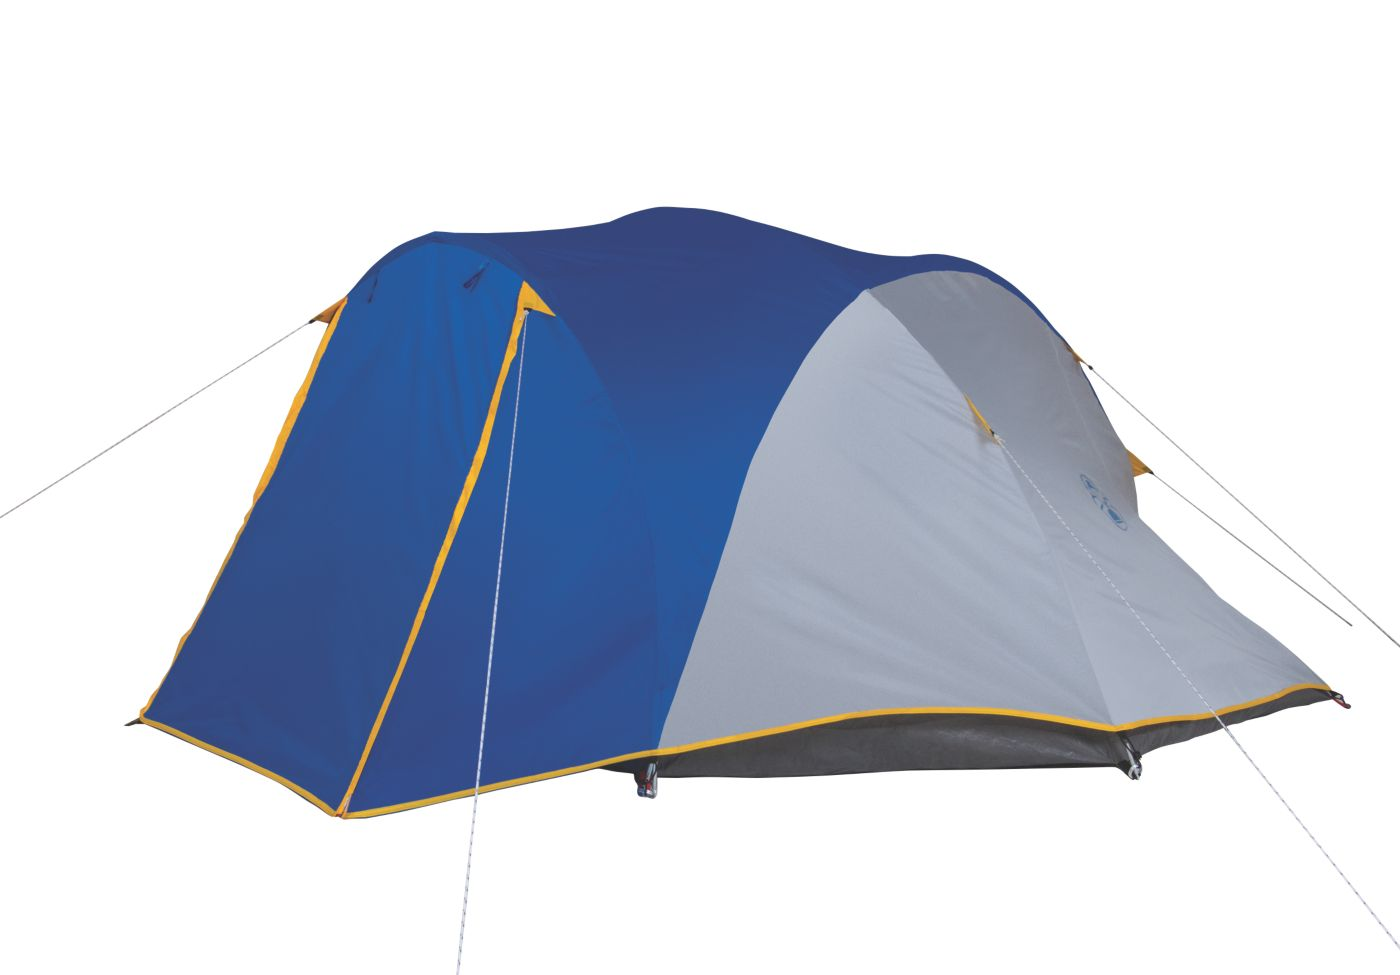 ... Rondeau® 3 Person Full Fly Tent image 1 ...  sc 1 st  Coleman Canada & Rondeau® 3 Person Full Fly Tent | Coleman